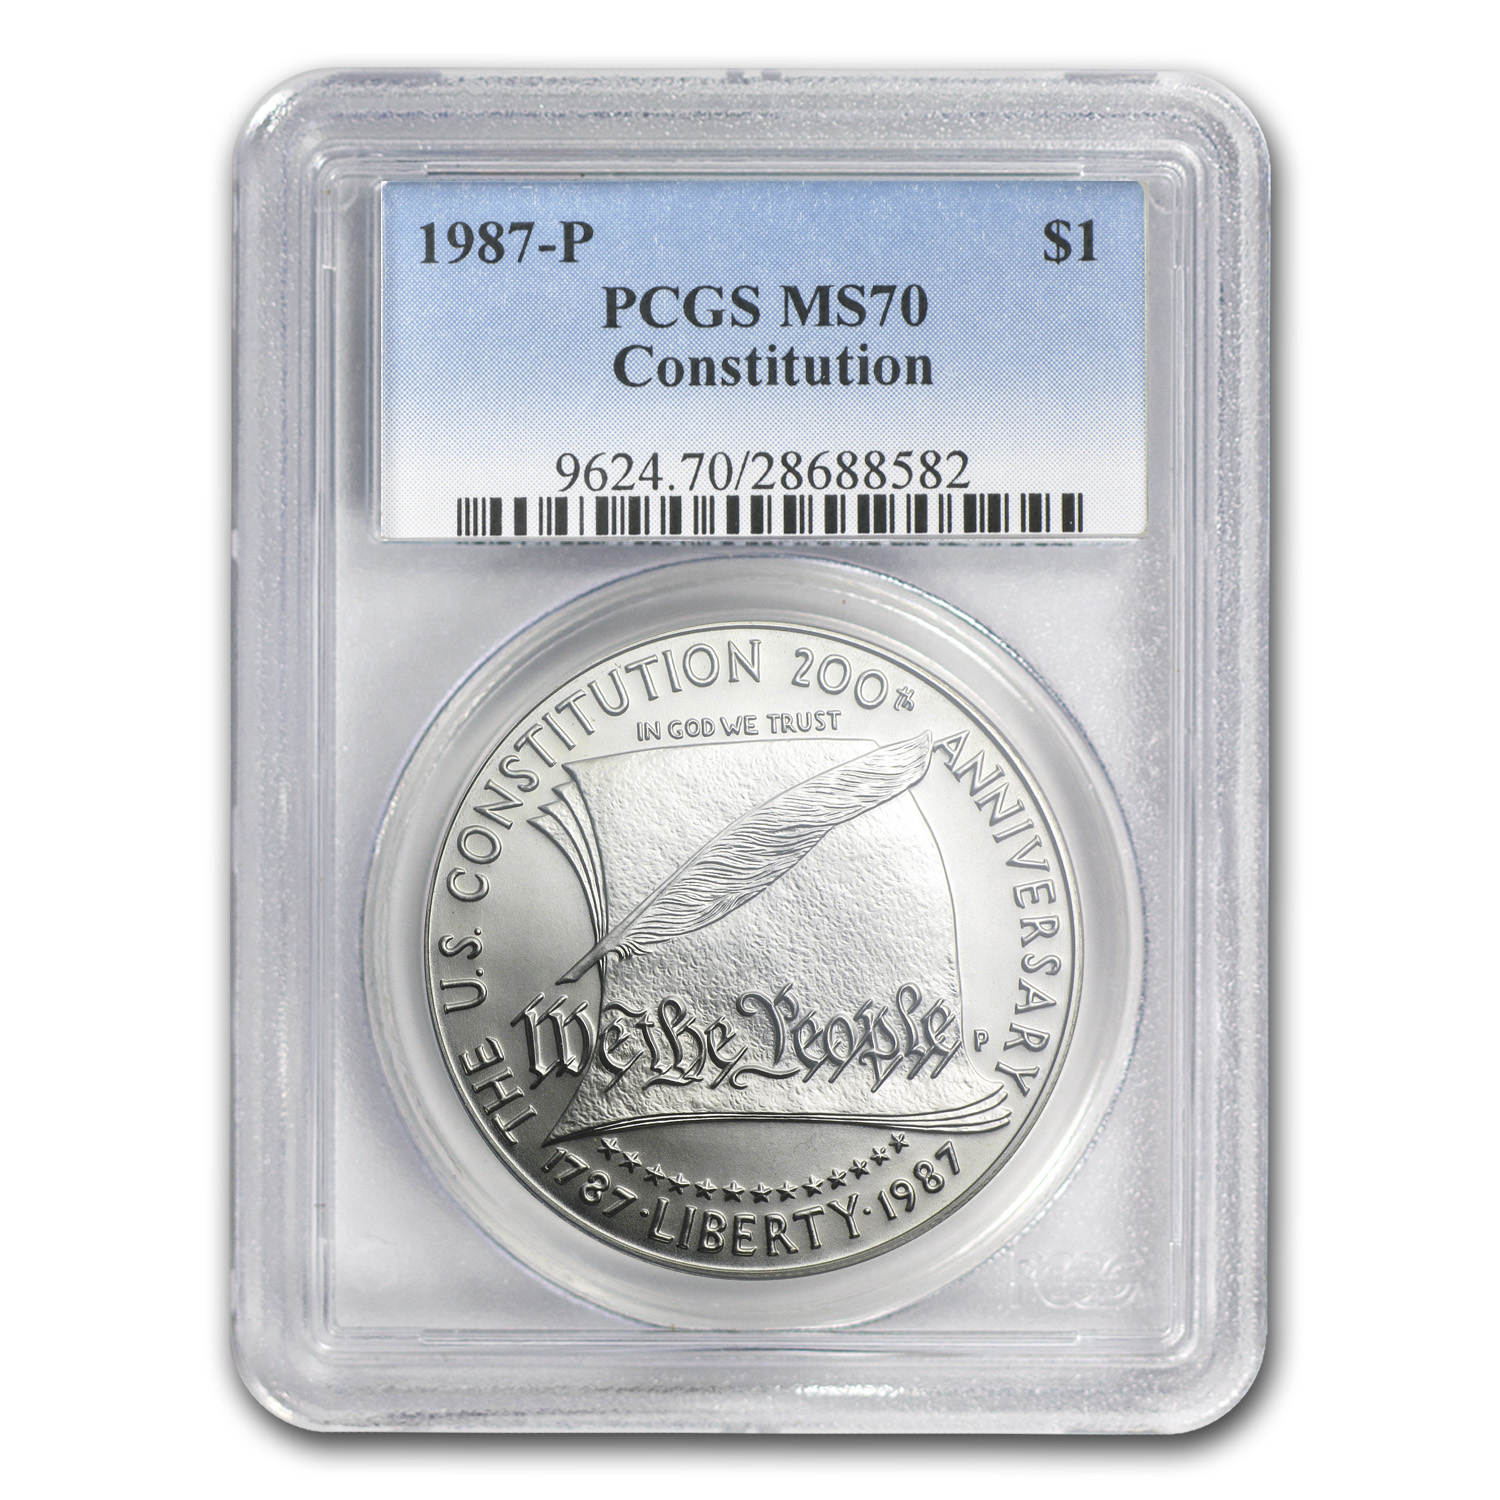 1987-P Constitution $1 Silver Commem MS-70 PCGS